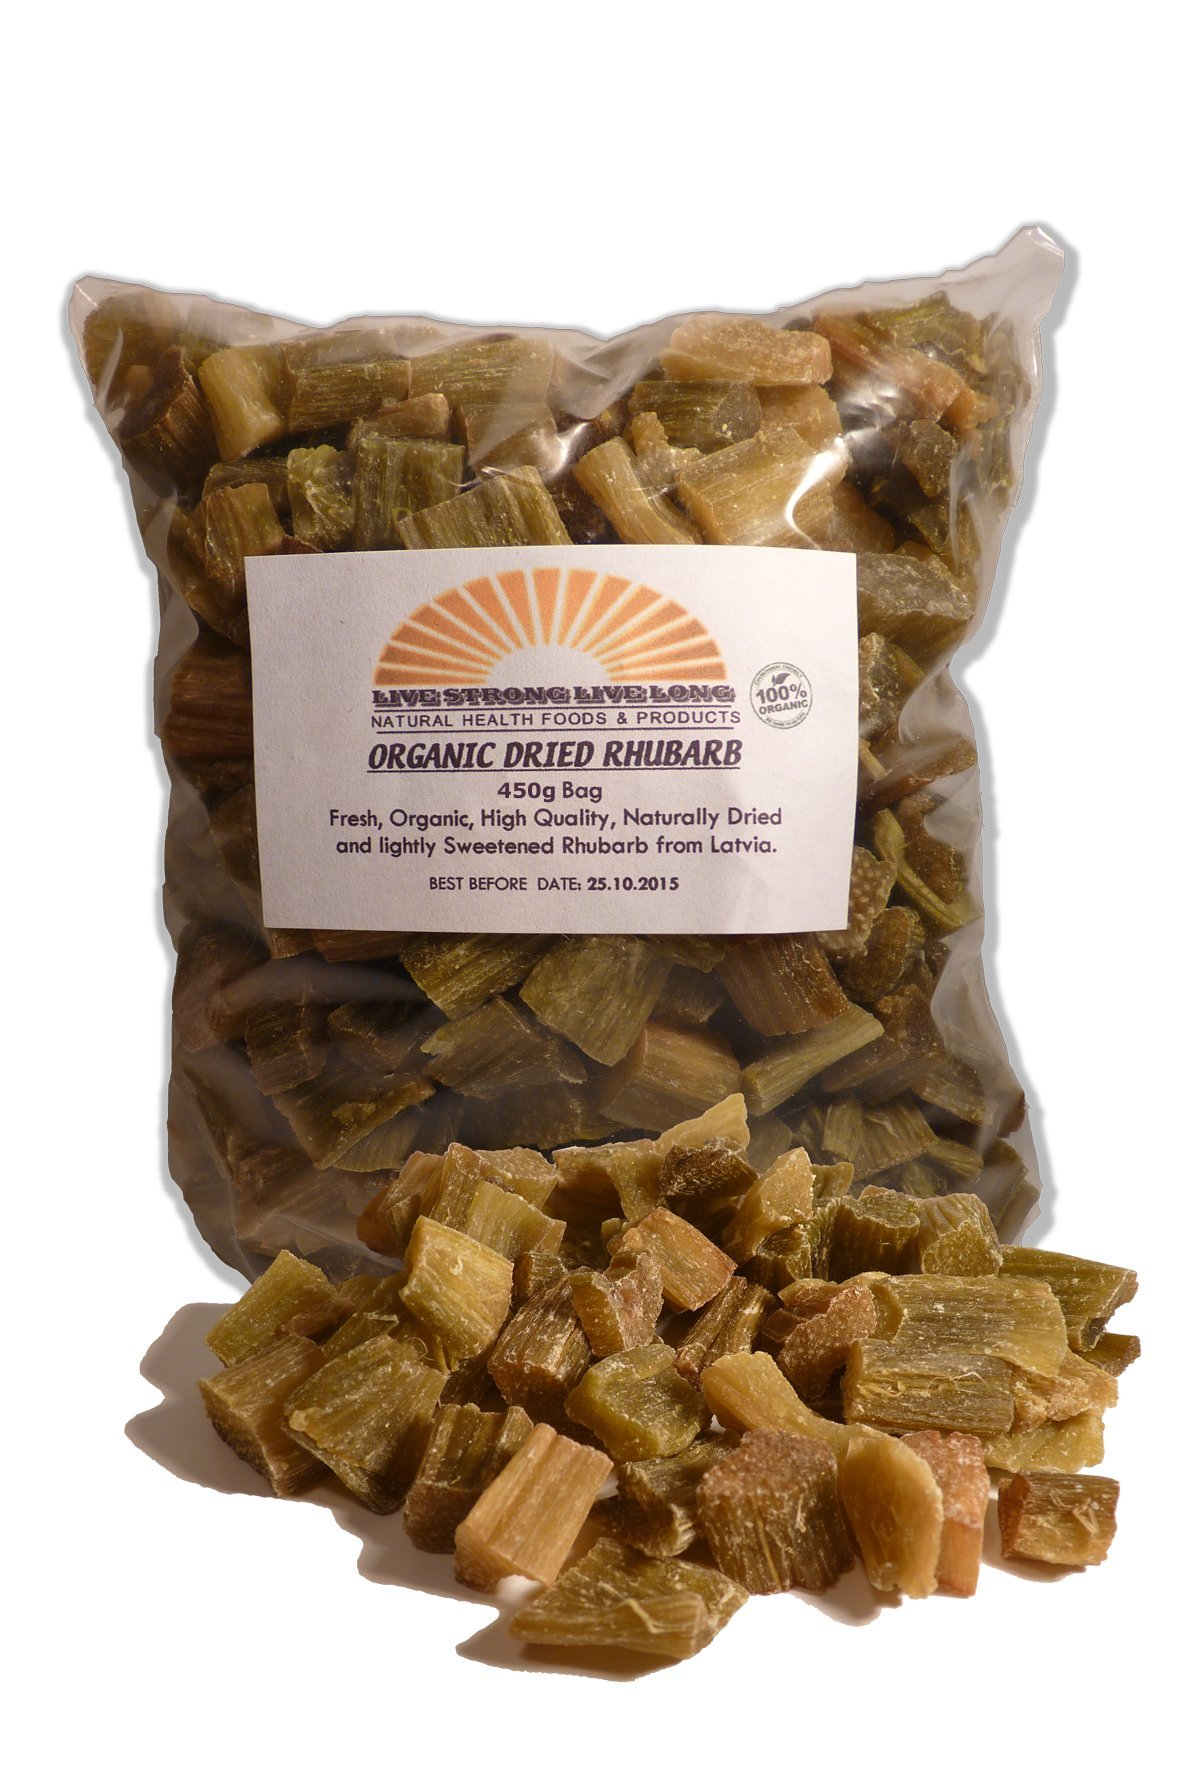 100% Organic Dried Rhubarb Pieces 450g Bag (15.9oz)